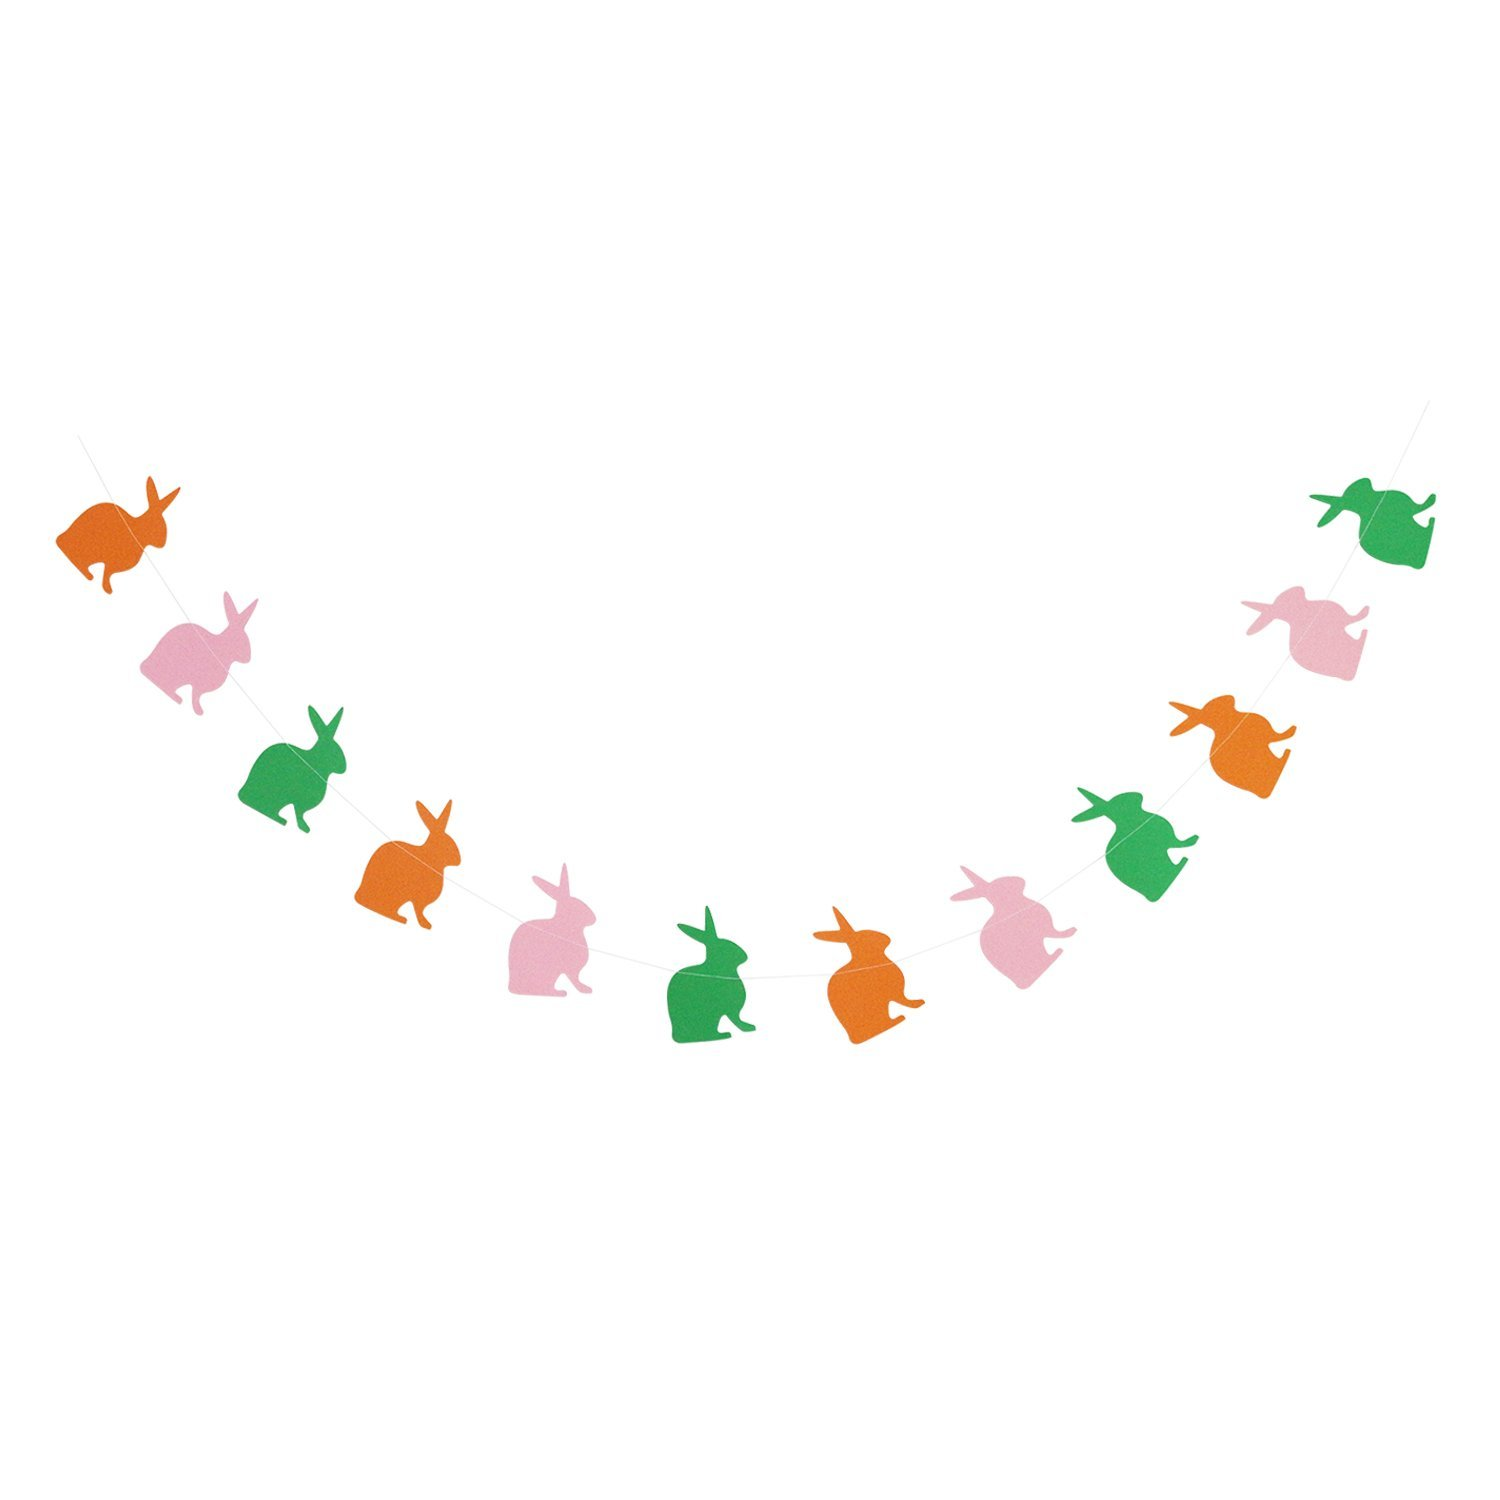 Colorful Bunny Garland Bunting | Colorful Rabbit Garland Banner | Easter Garland Banner | Happy Easter Spring Decorations | Easter Party Supplies | Home Mantel Decor | 7.5Ft long